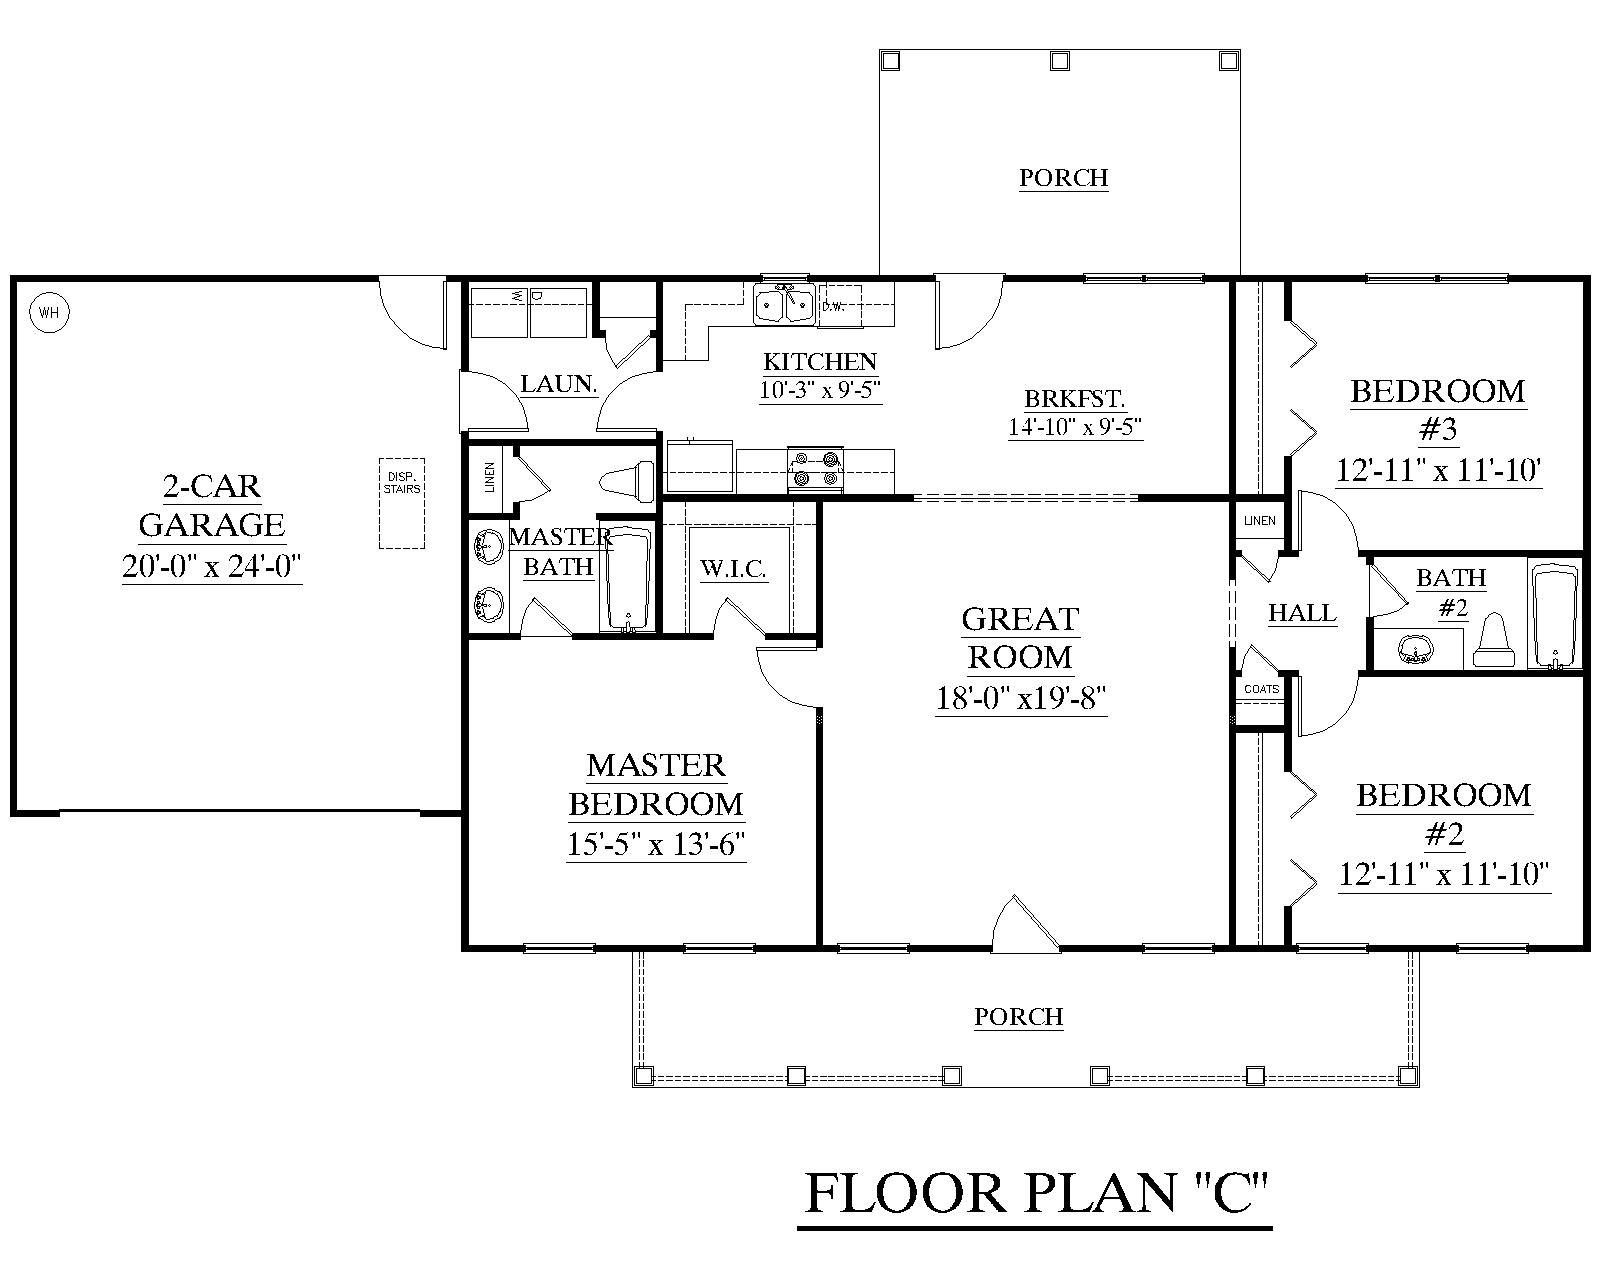 68c14e665c7931056318630334bc0279 Daniel Boone Home Floor Plans on abraham lincoln home, william tecumseh sherman home, henry wadsworth longfellow home, john c. calhoun home, kit carson home, thomas jefferson home, franklin d. roosevelt home, donny osmond home, george washington home, andy griffith home, jefferson davis home, david bowie home,